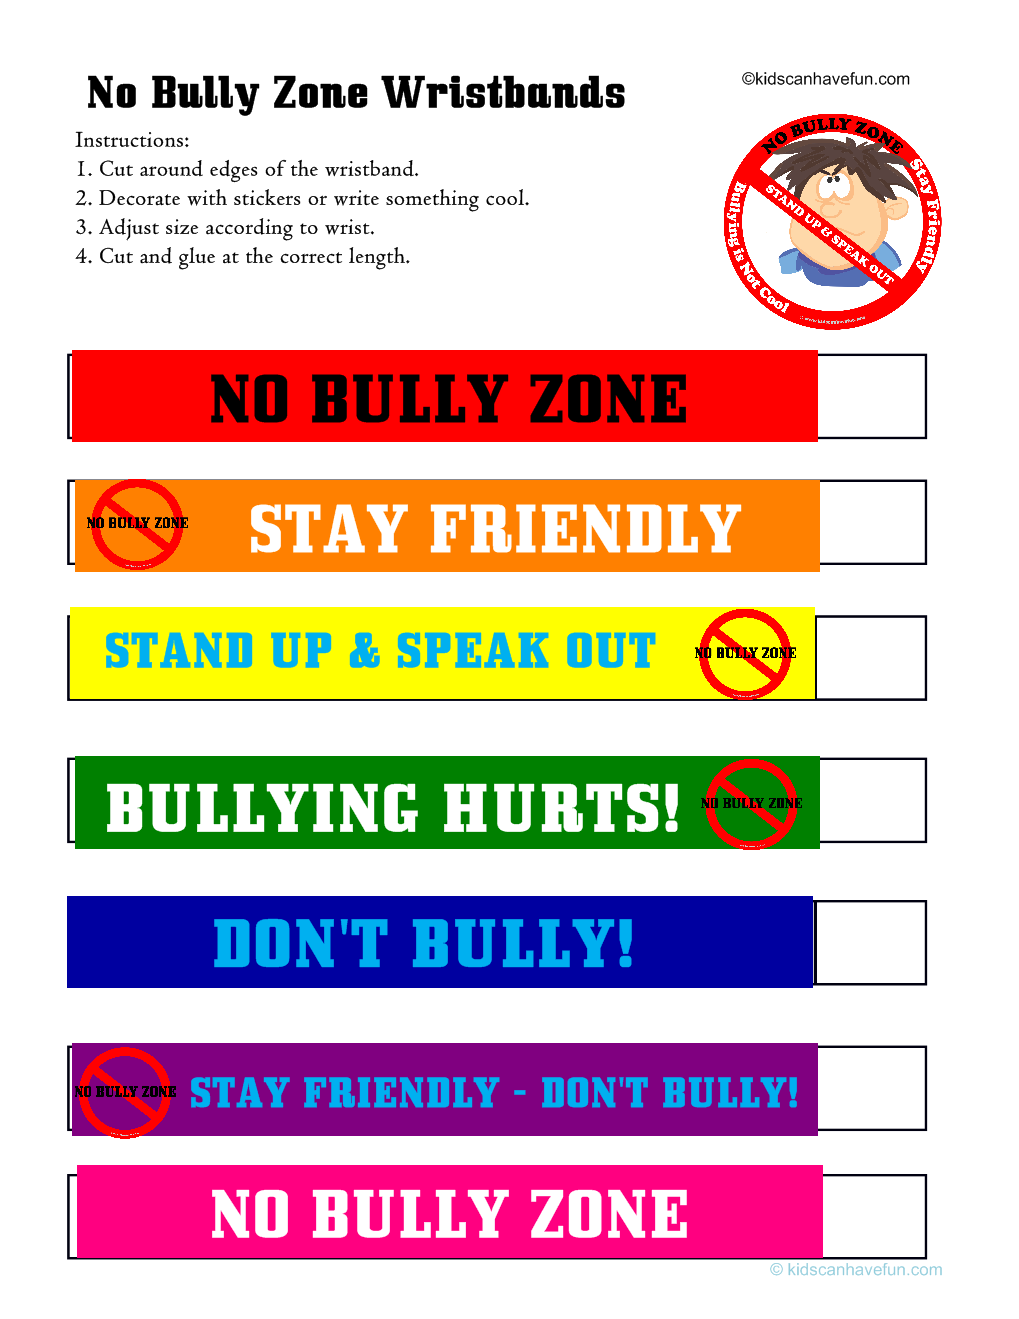 No Bully Zone Wristbands Anti Bullying Resources School